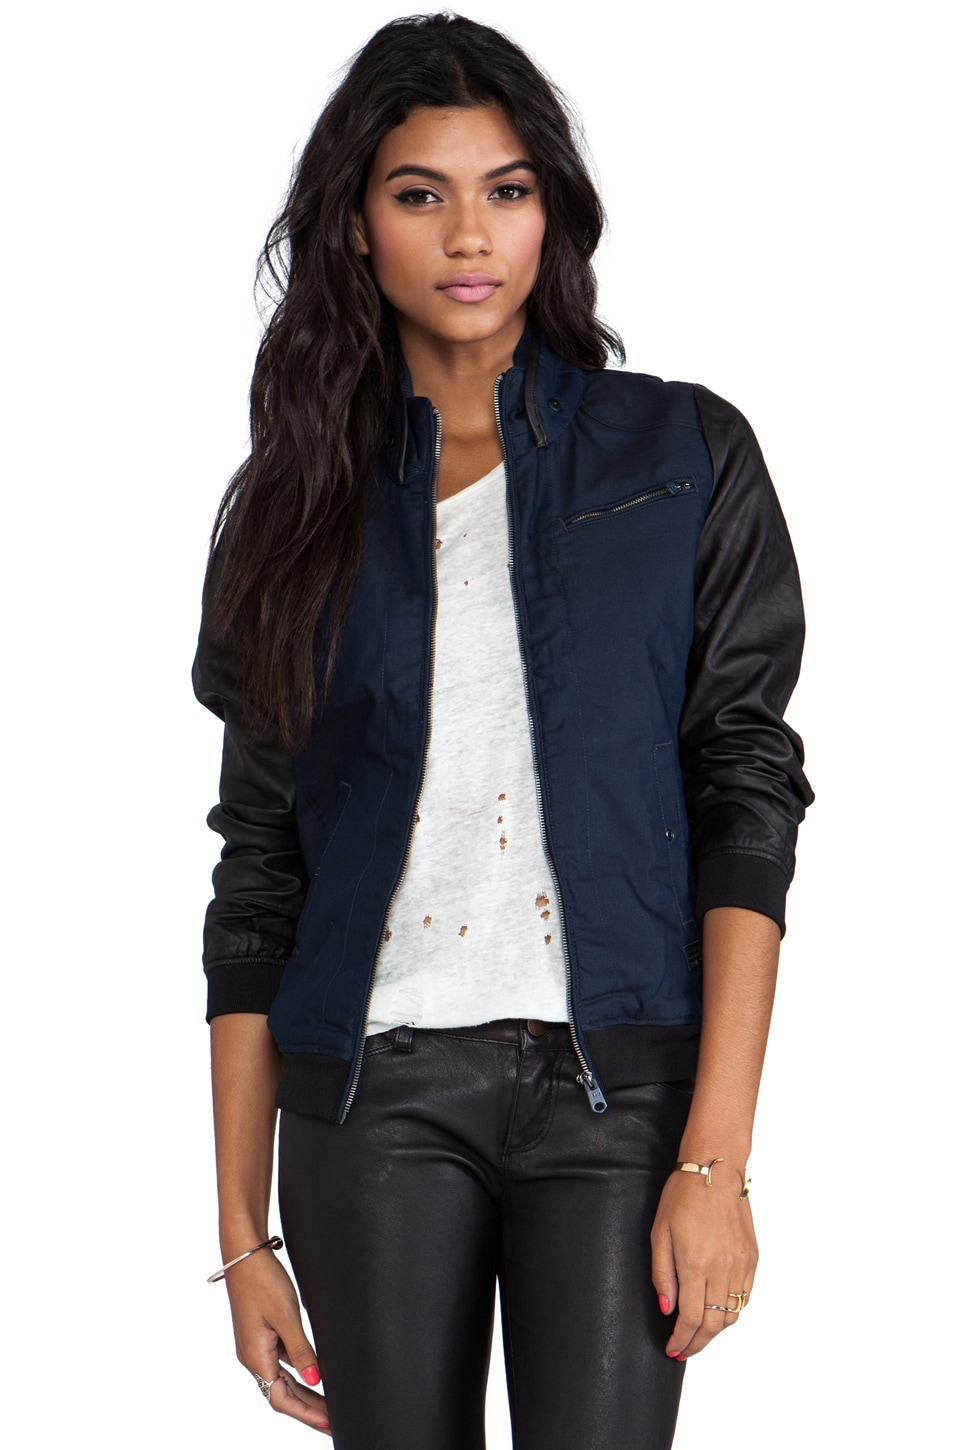 G-Star Raw Bomber Jacket in Raw